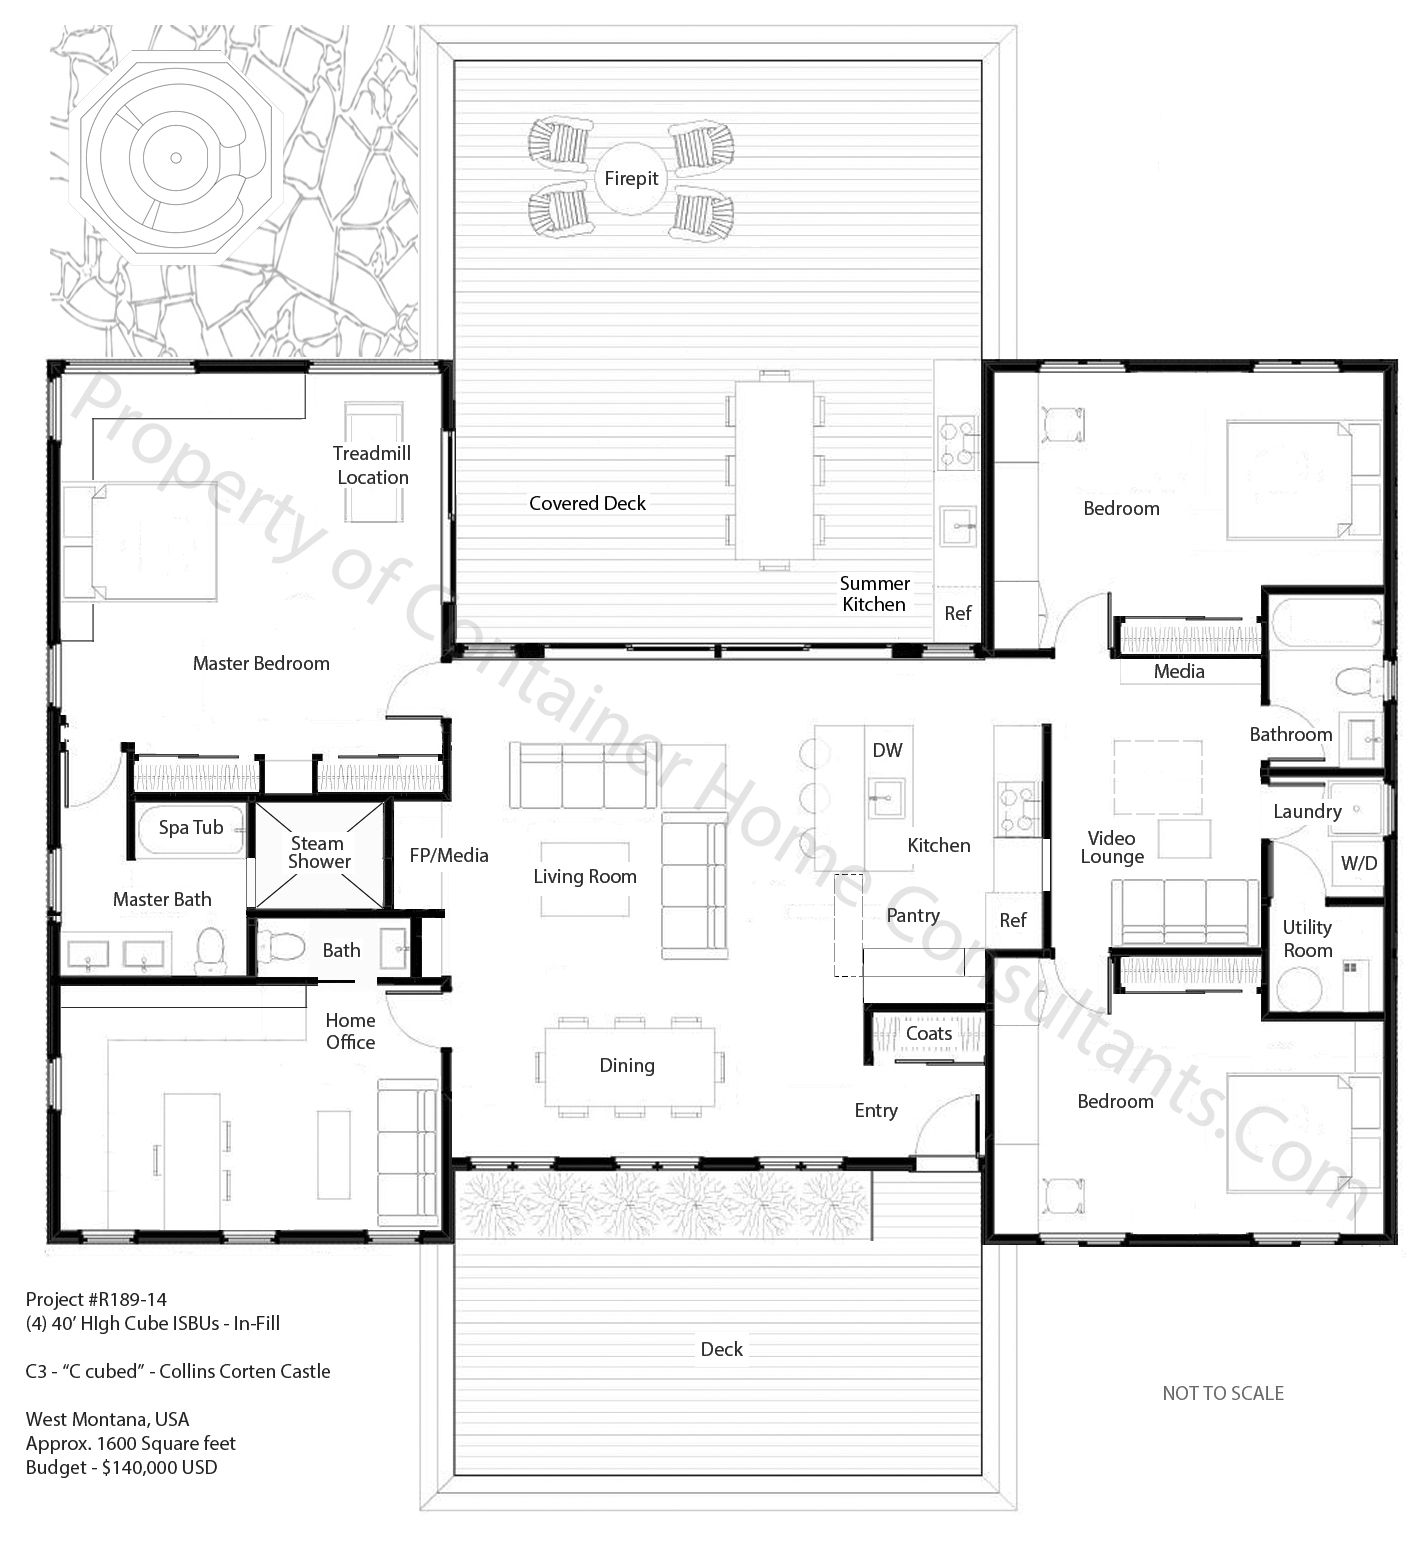 H shaped container home plan | House planes | Pinterest ...